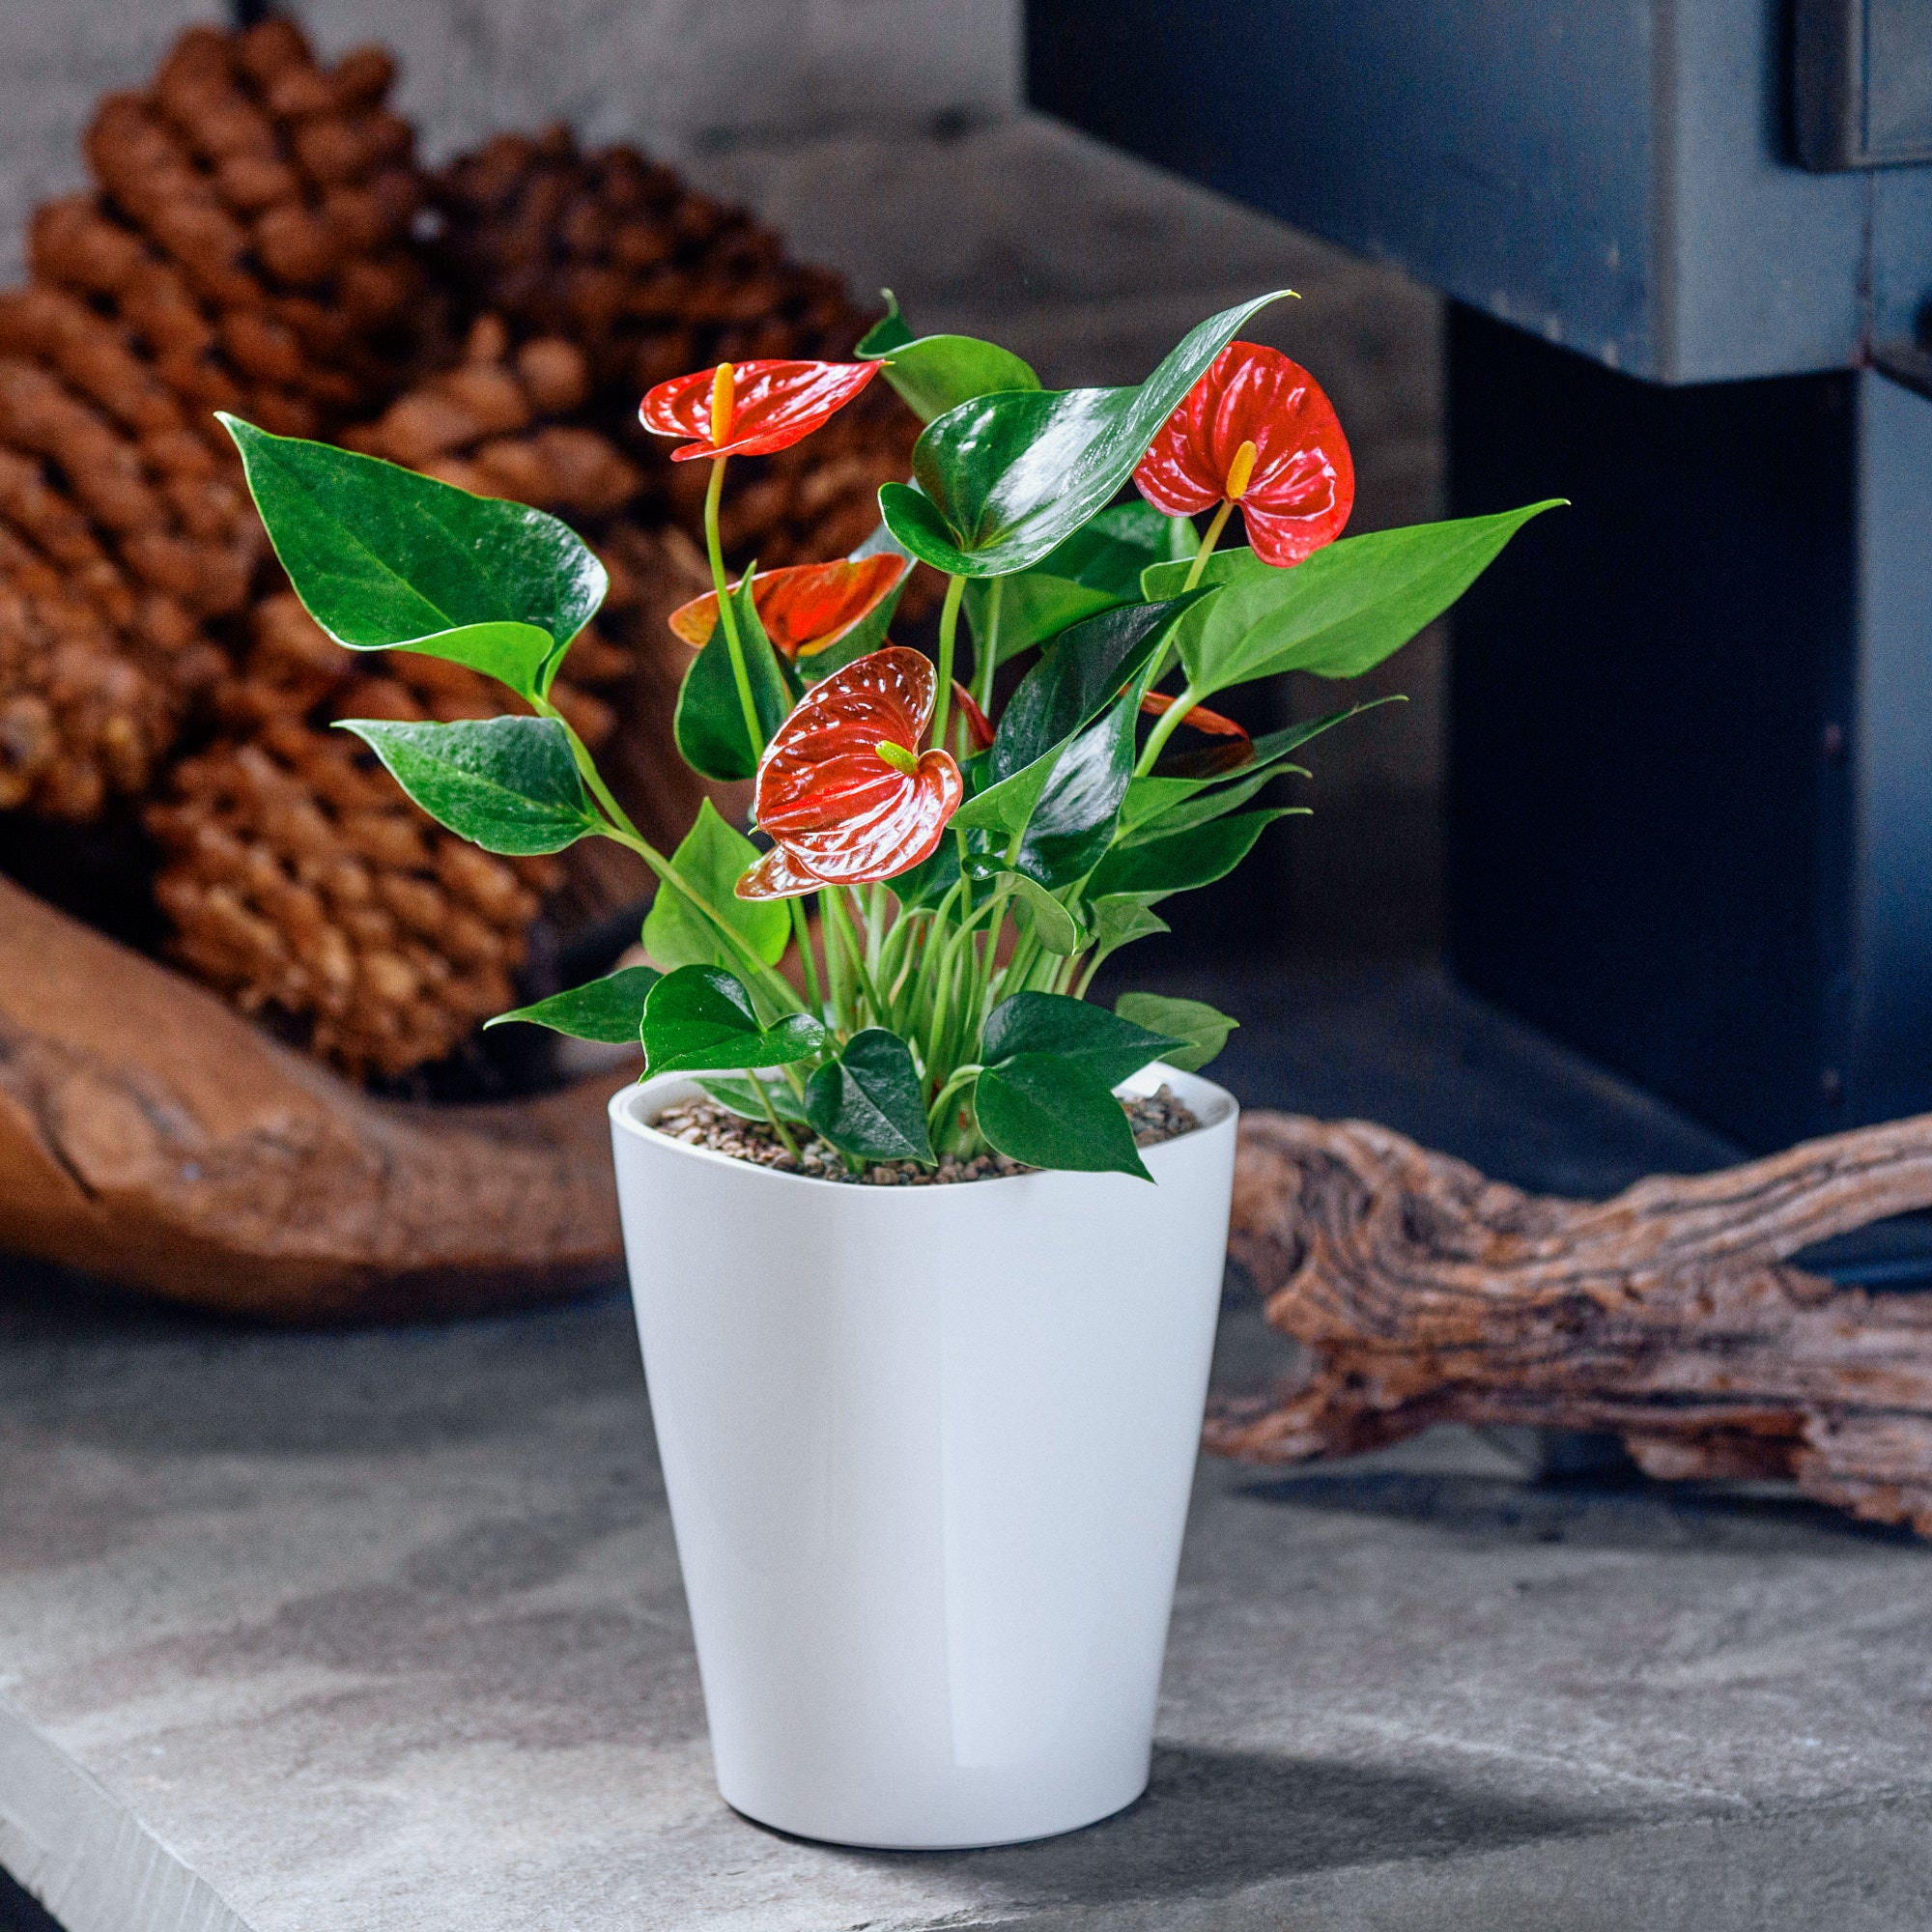 Anthurium potted in Lechuza Deltini white planter - My City Plants